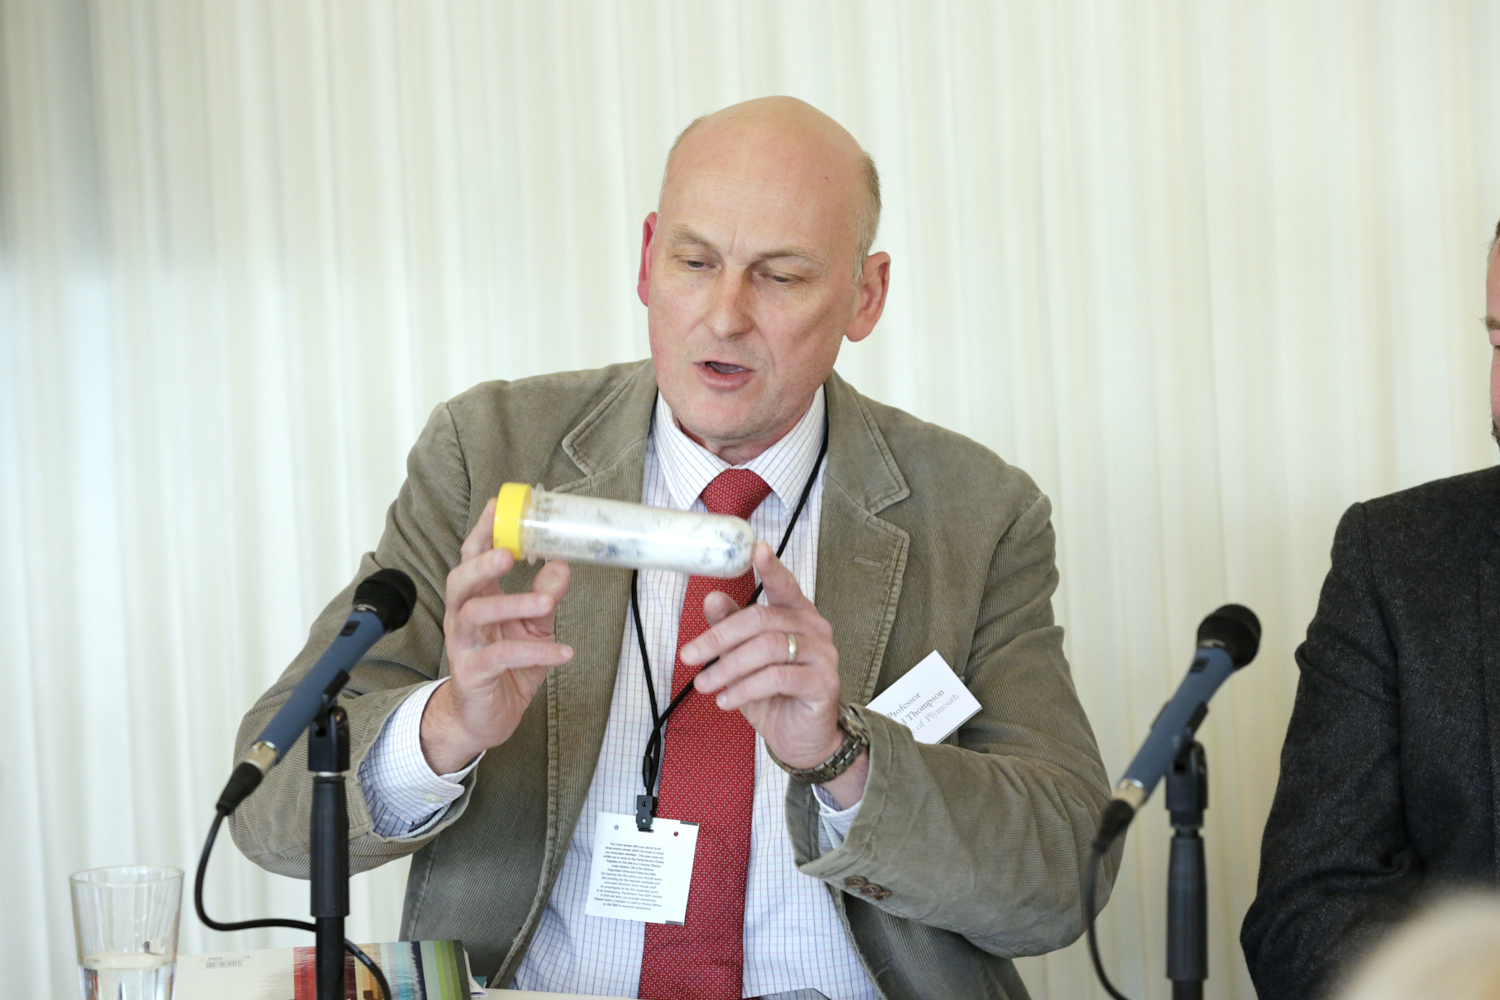 Professor Richard Thompson OBE